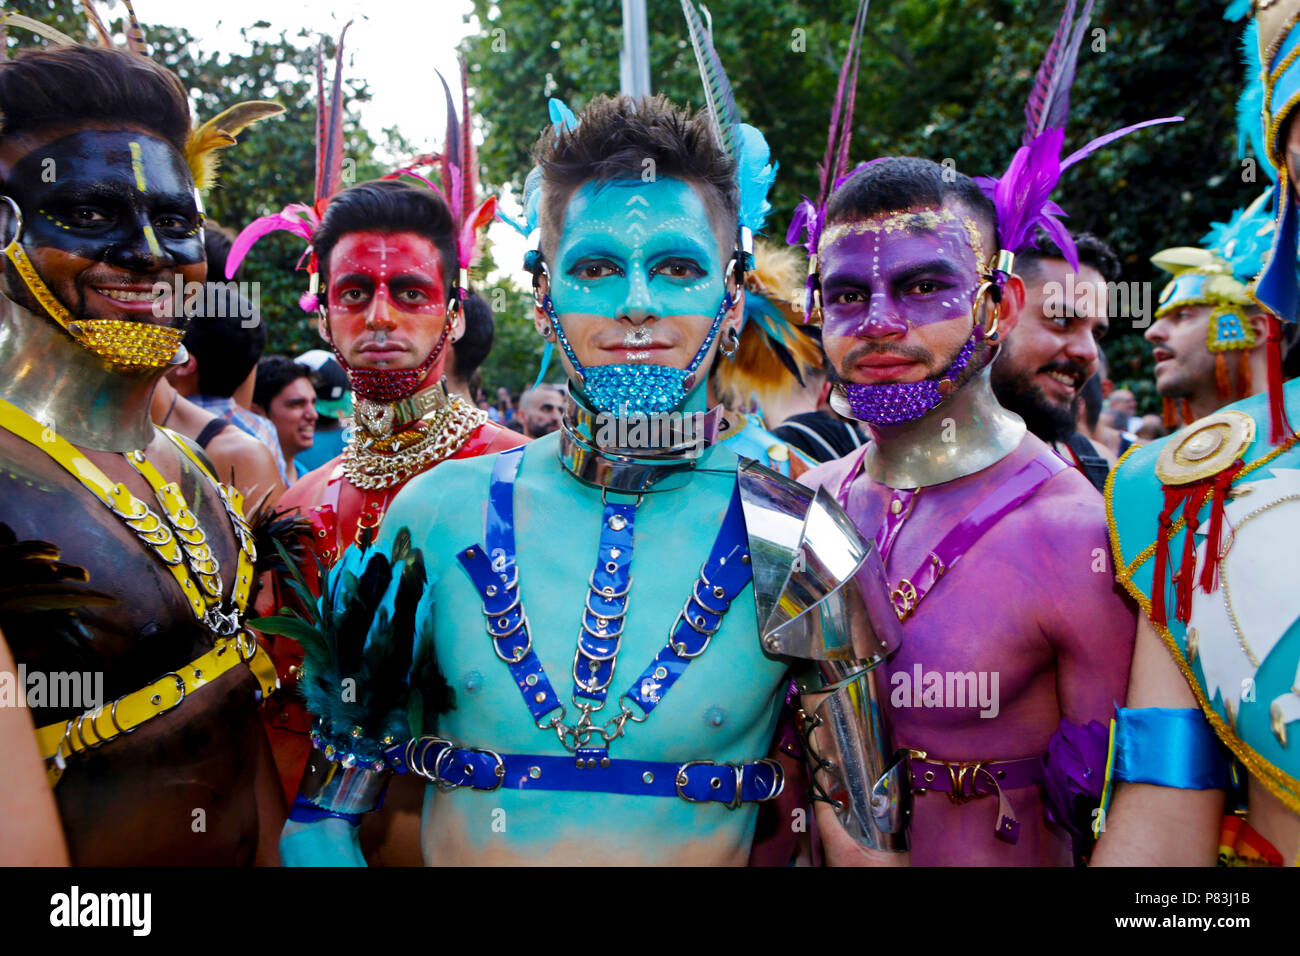 Group of boys with their faces painted with bright colors and dressed in bright colors as well seen during the 2018 Pride Parade. Thousands of people has been filling the streets and avenues of Madrid on a sunny day for the 2018 gay pride parade after still struggling for gay rights around the world. - Stock Image